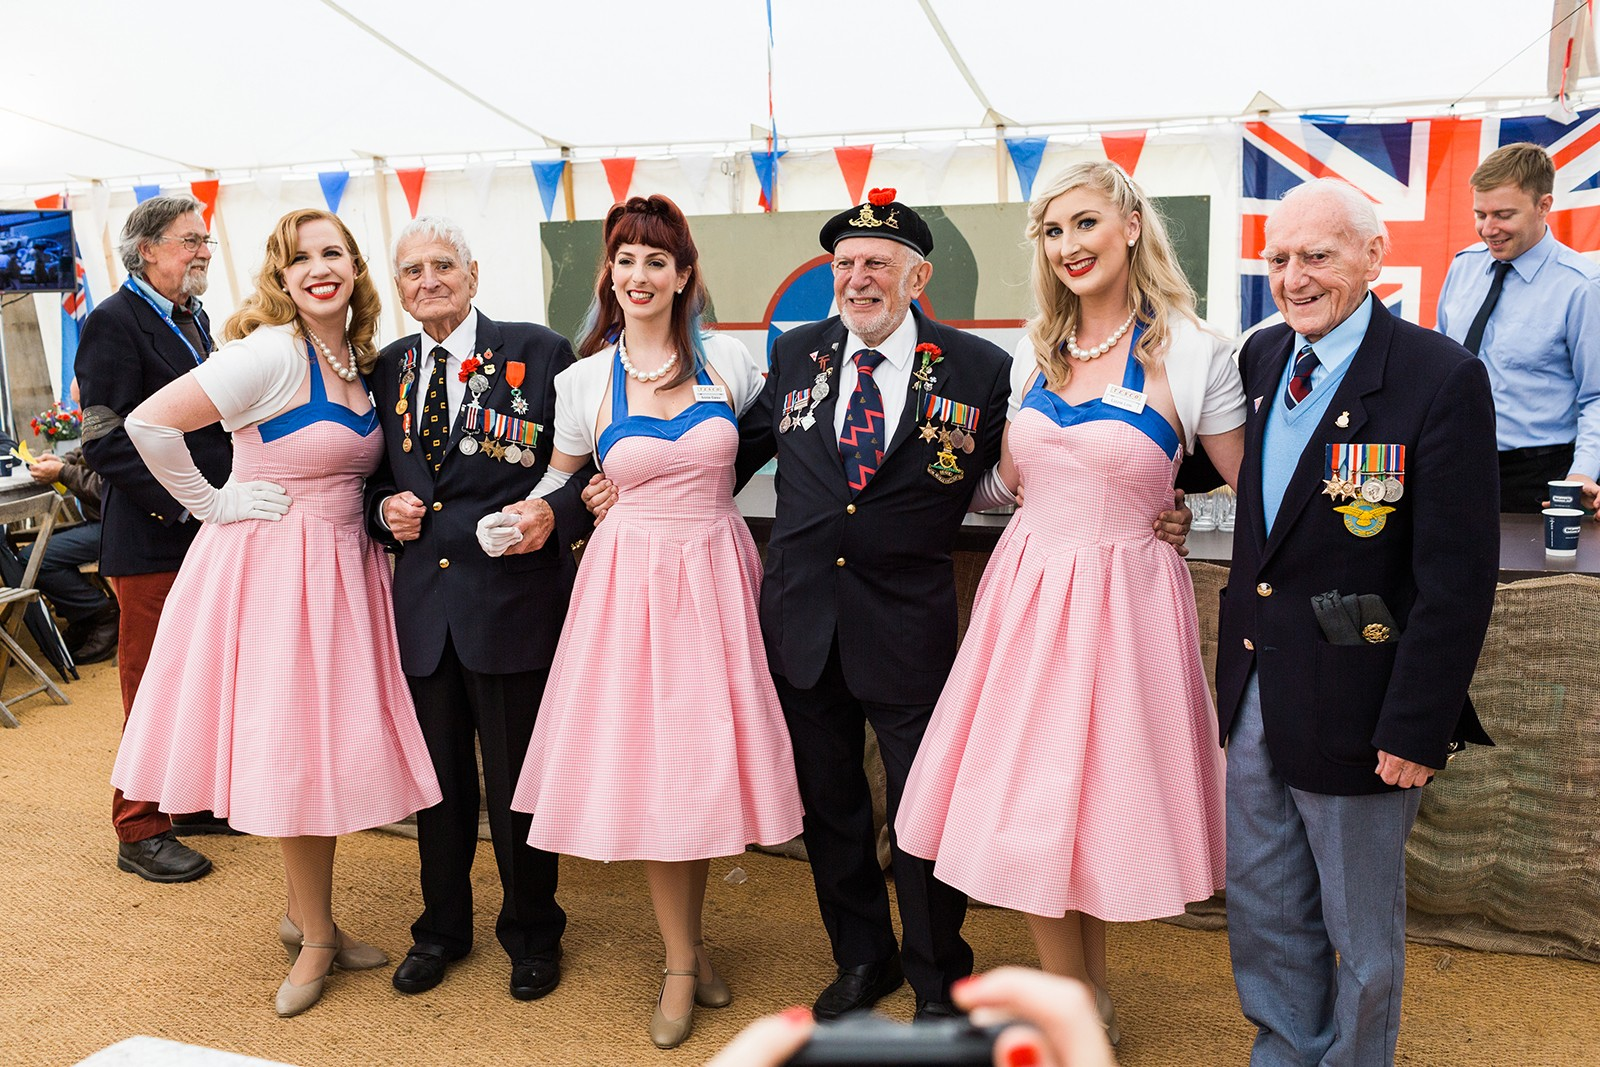 D-Day Veterans and Candy Girls at Goodwood Revival